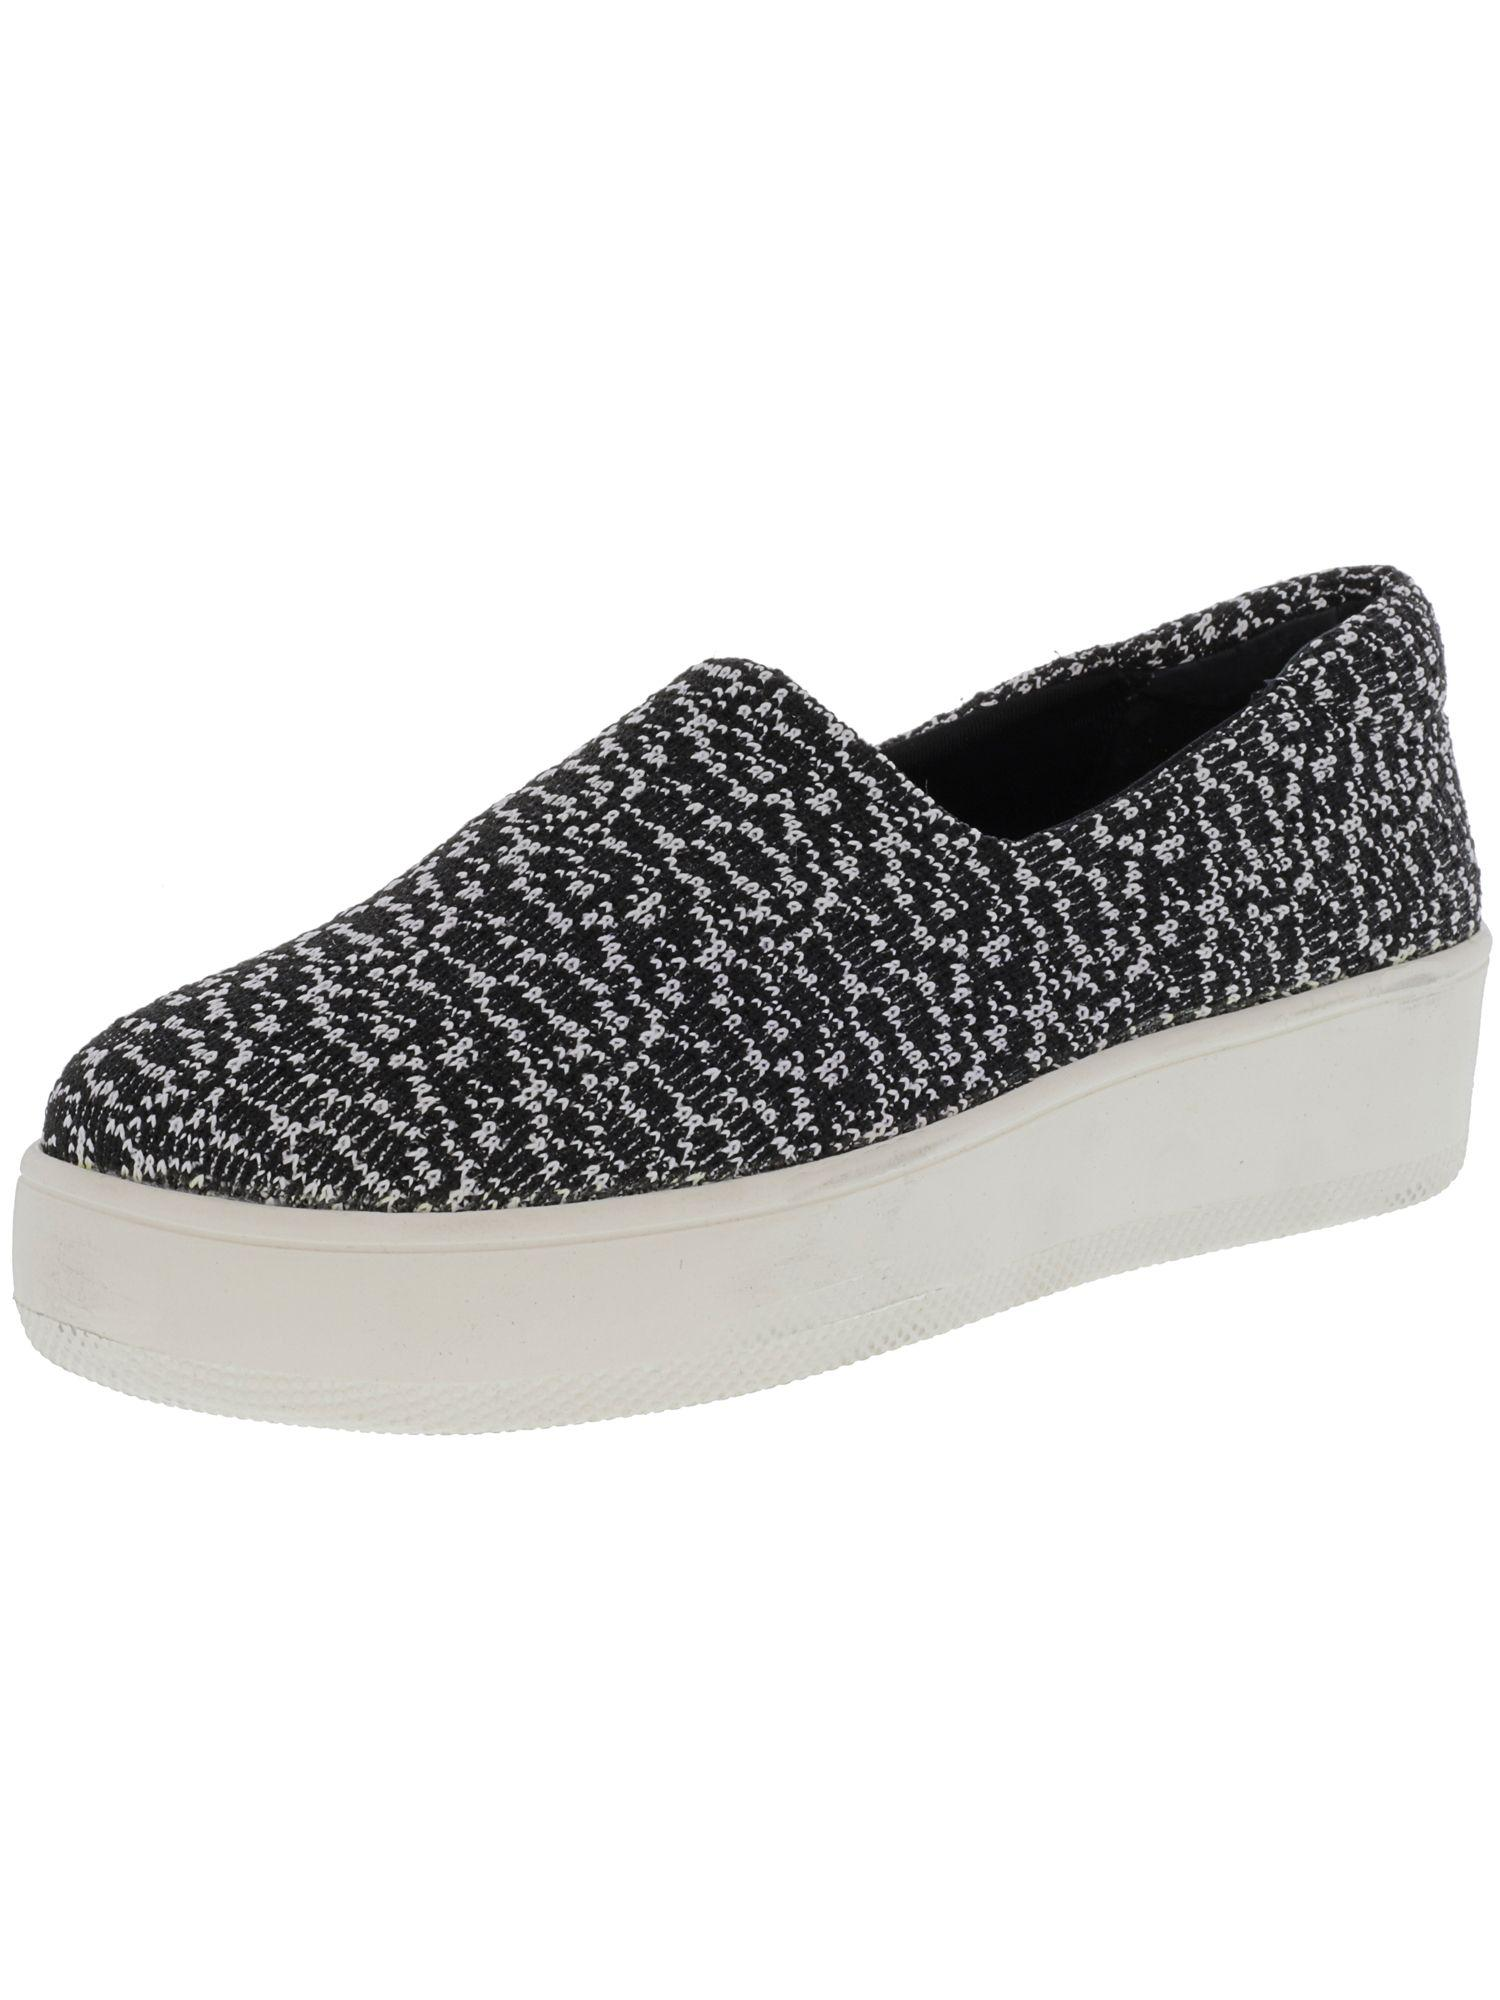 6be85e9a1ae3 Lyst - Steve Madden Women s Hilda Ankle-high Fabric Slip-on Shoes in ...